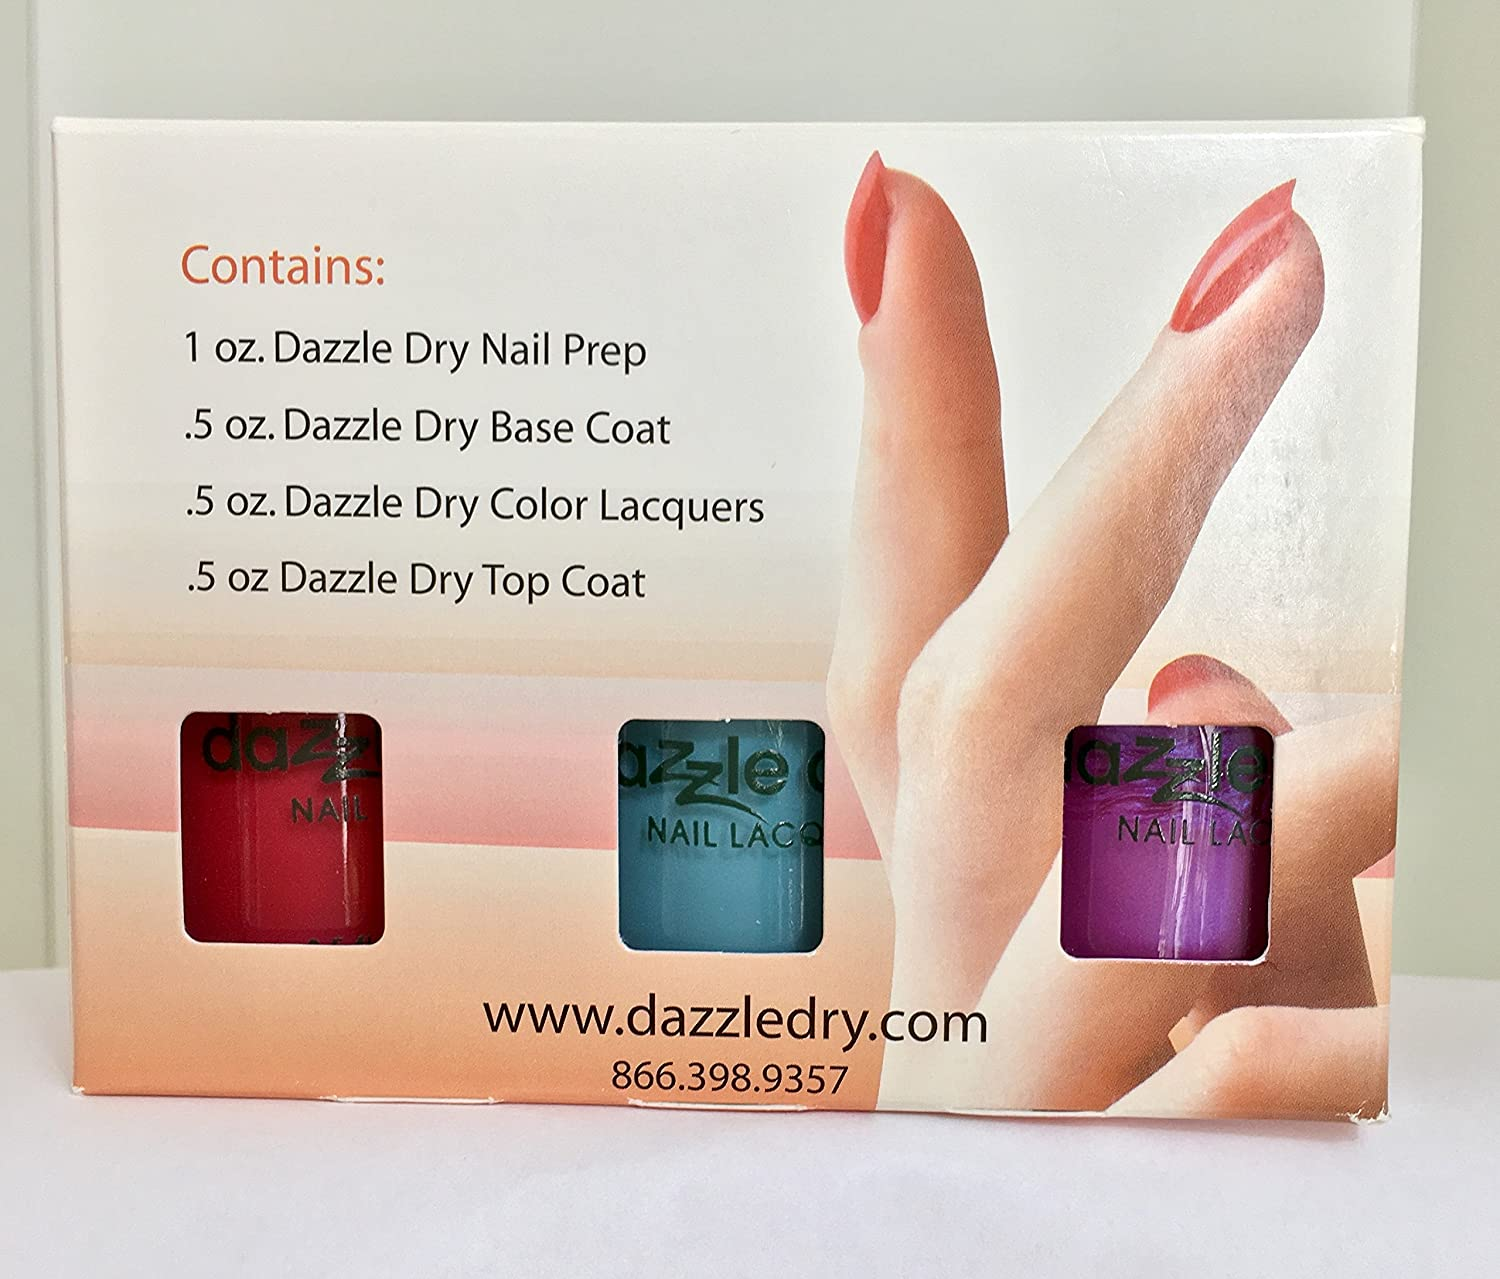 Amazon.com : Dazzle DryTM Nail Polish System Kit 6 pc : Dazzle Dry ...